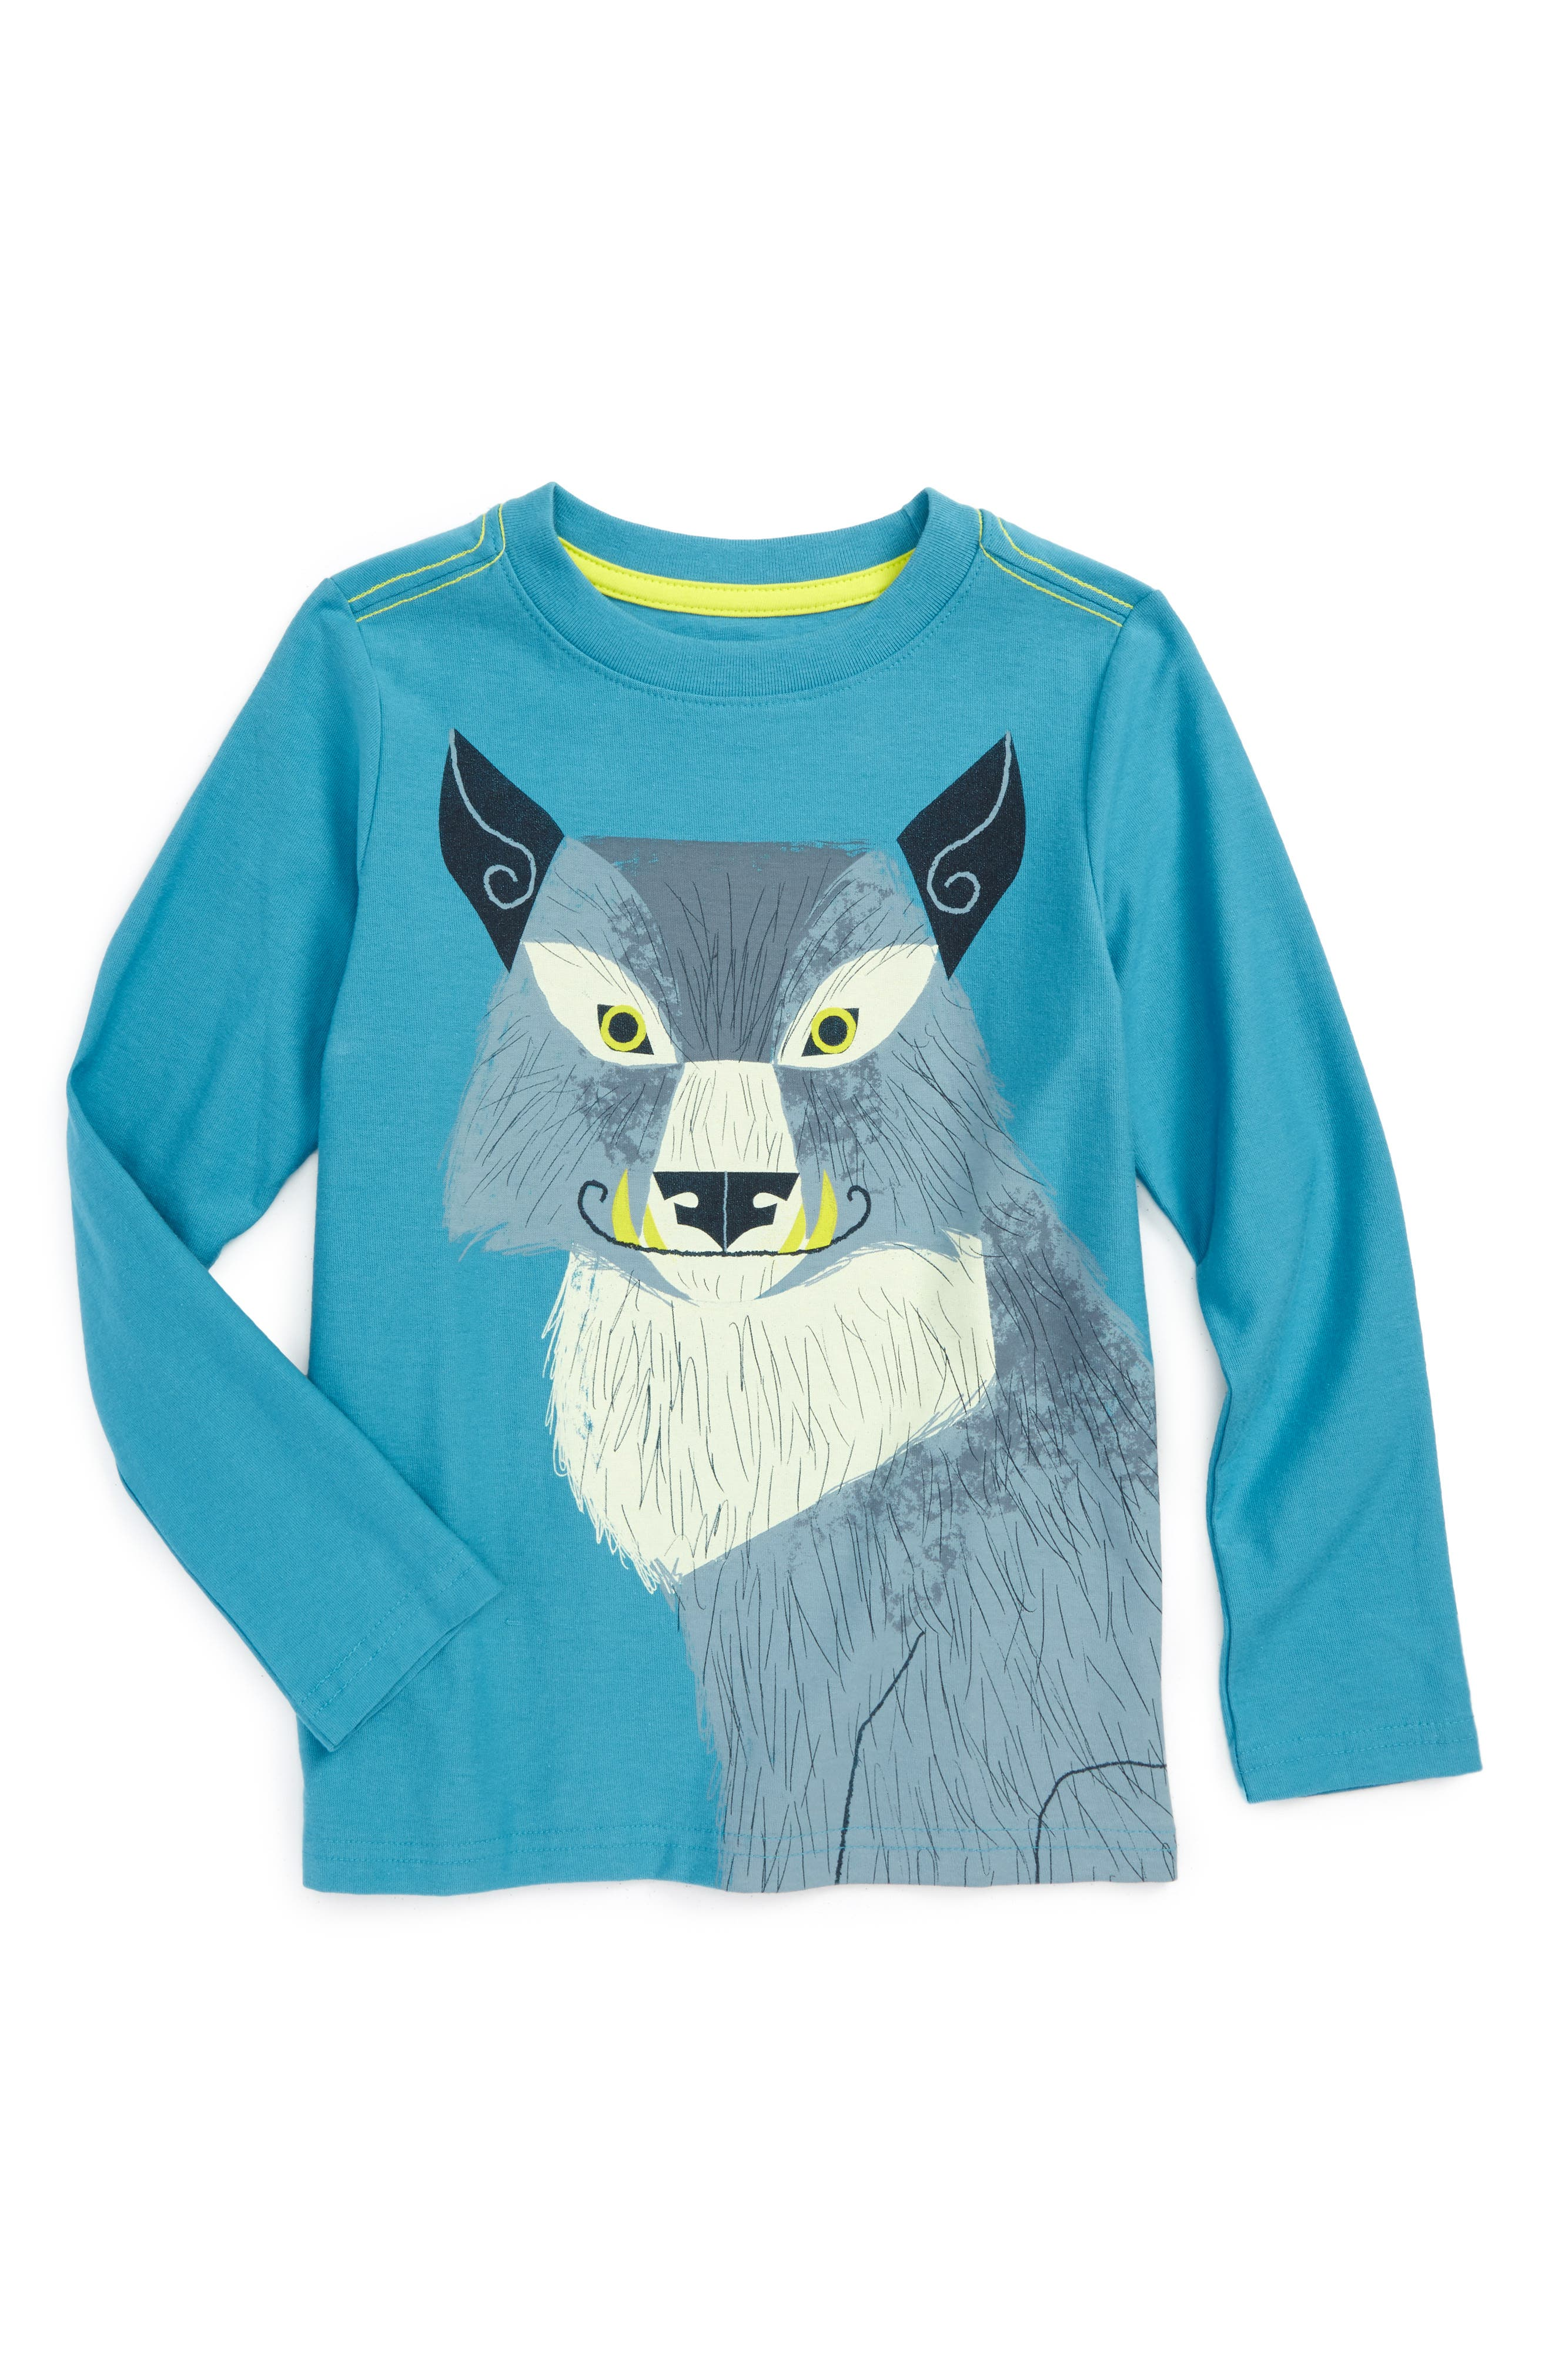 Alternate Image 1 Selected - Tea Collection Wulver Graphic T-Shirt (Toddler Boys & Little Boys)